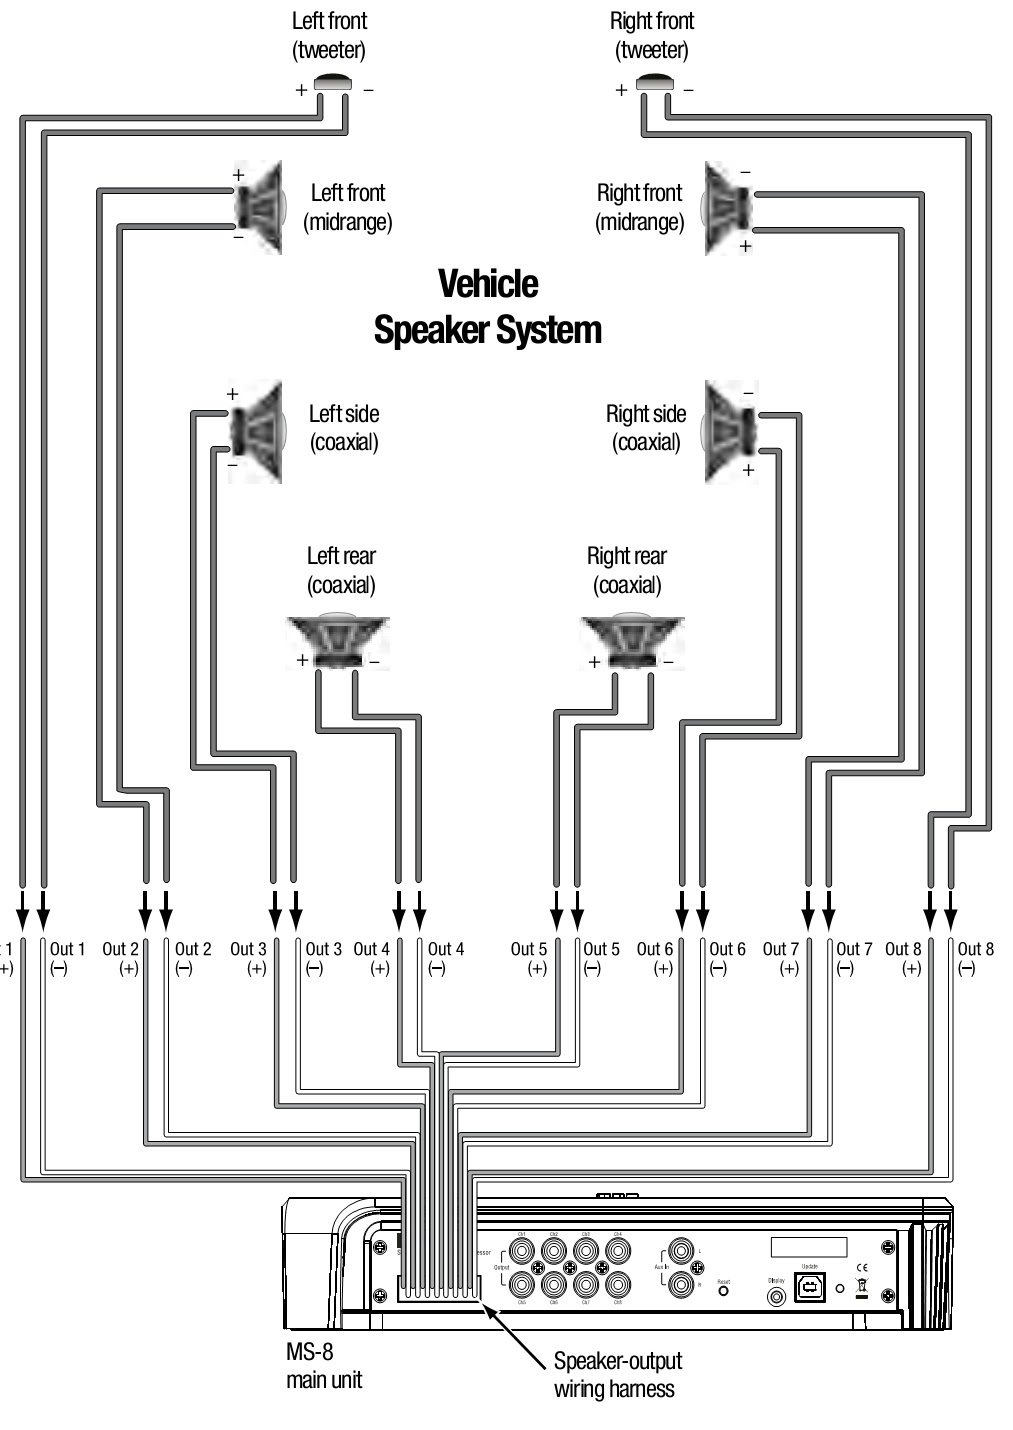 small resolution of 4ch amp wiring diagram wiring diagram general alpine 4 channel amp wiring diagram 4ch amp wiring diagram